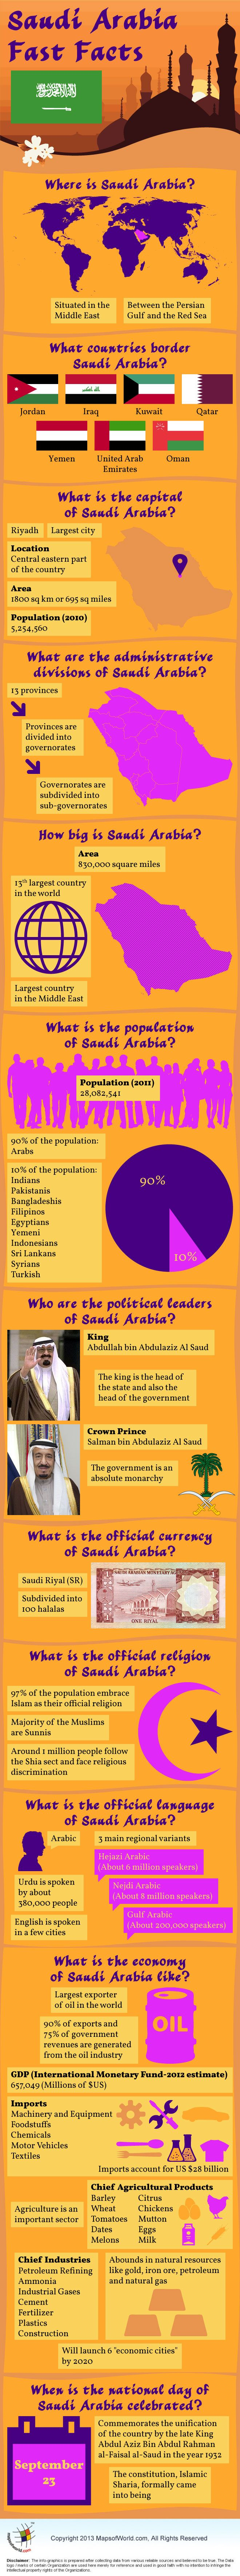 Infographic of Saudi Arabia Facts